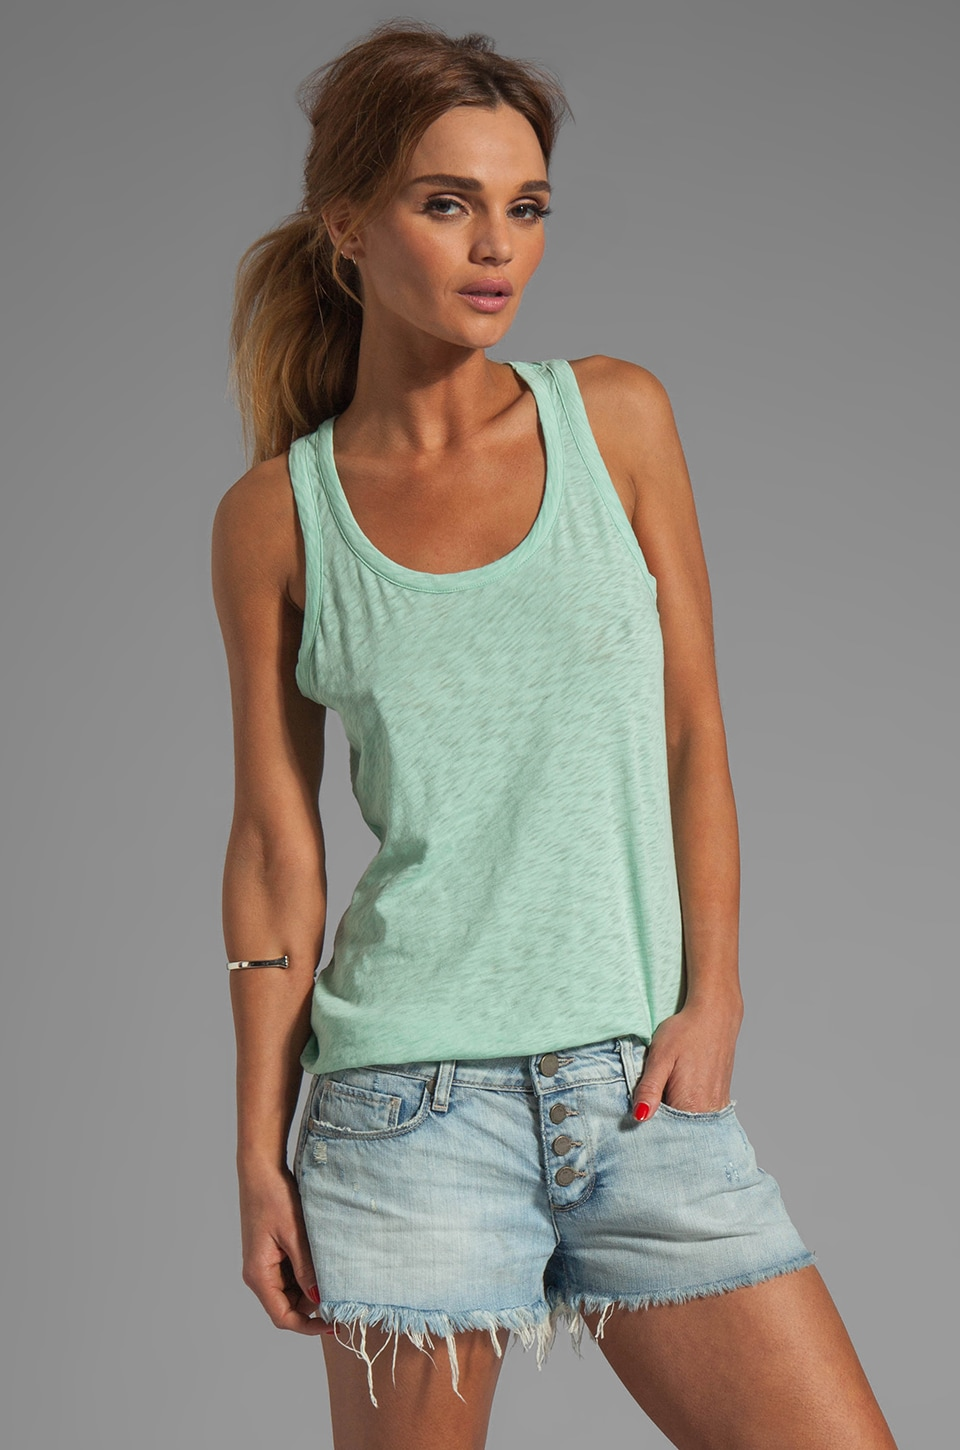 rag & bone/JEAN Classic Beater Tank in Celadon Green